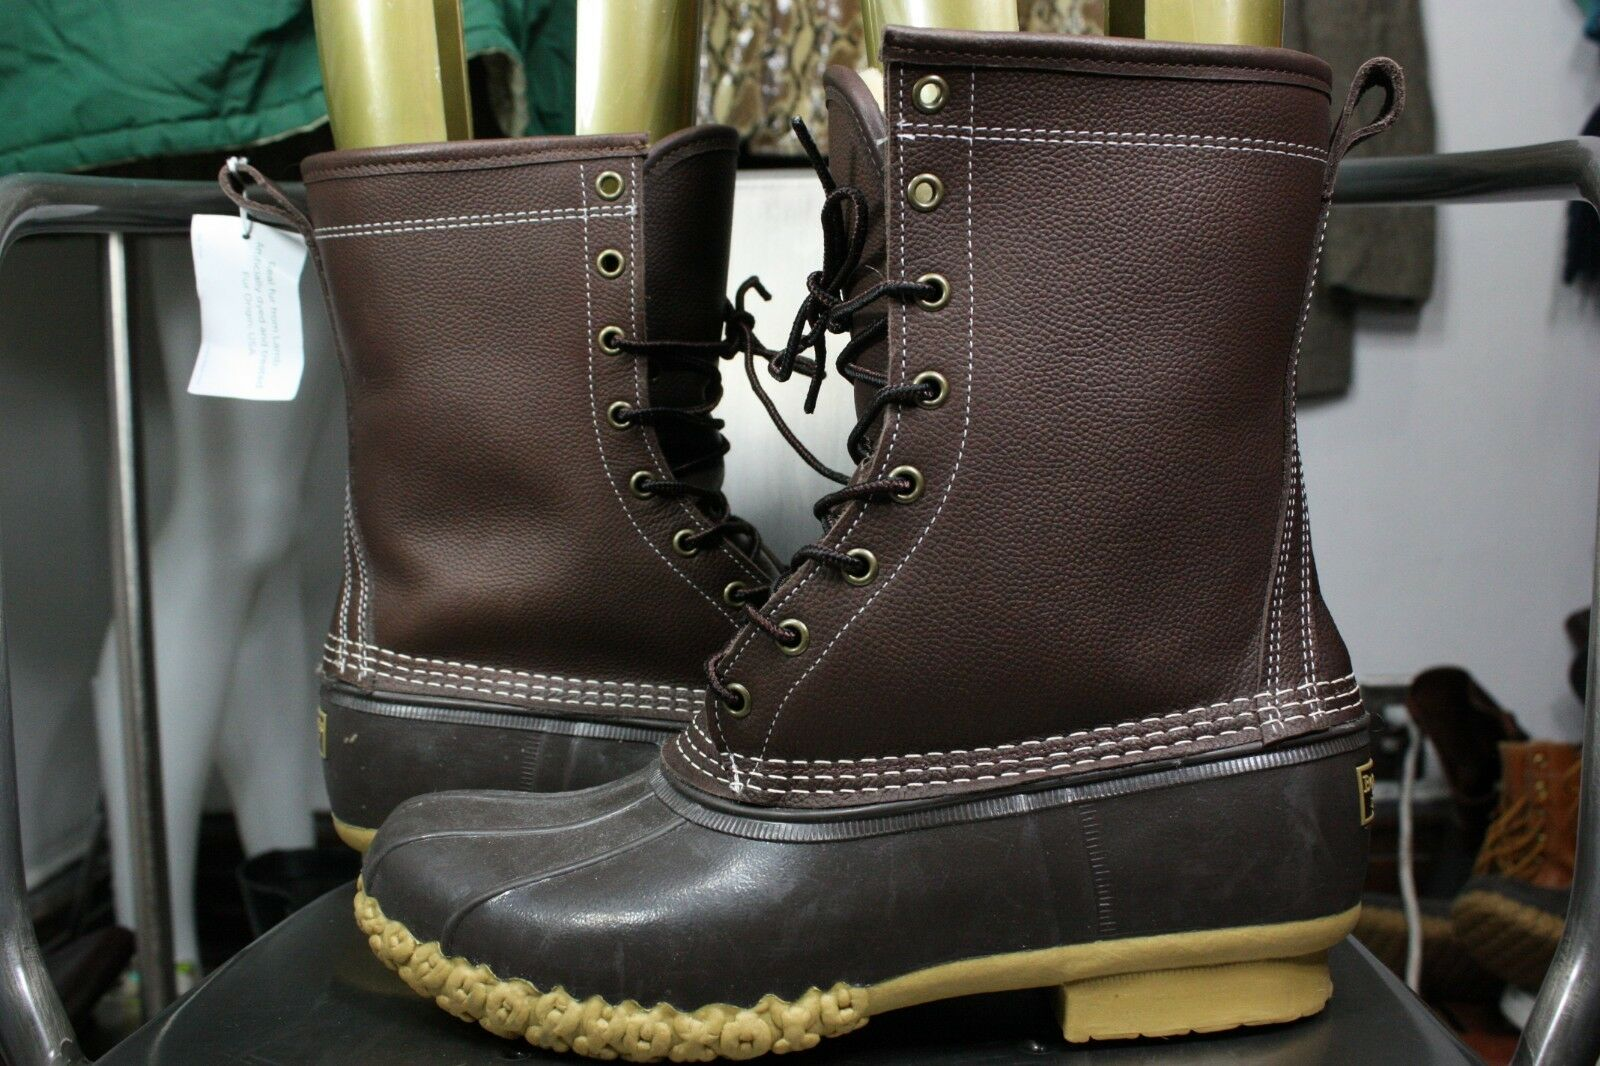 LL LL LL Bean boots 11 W shearling 10  lined leather rubber duck new womens winter a076f2